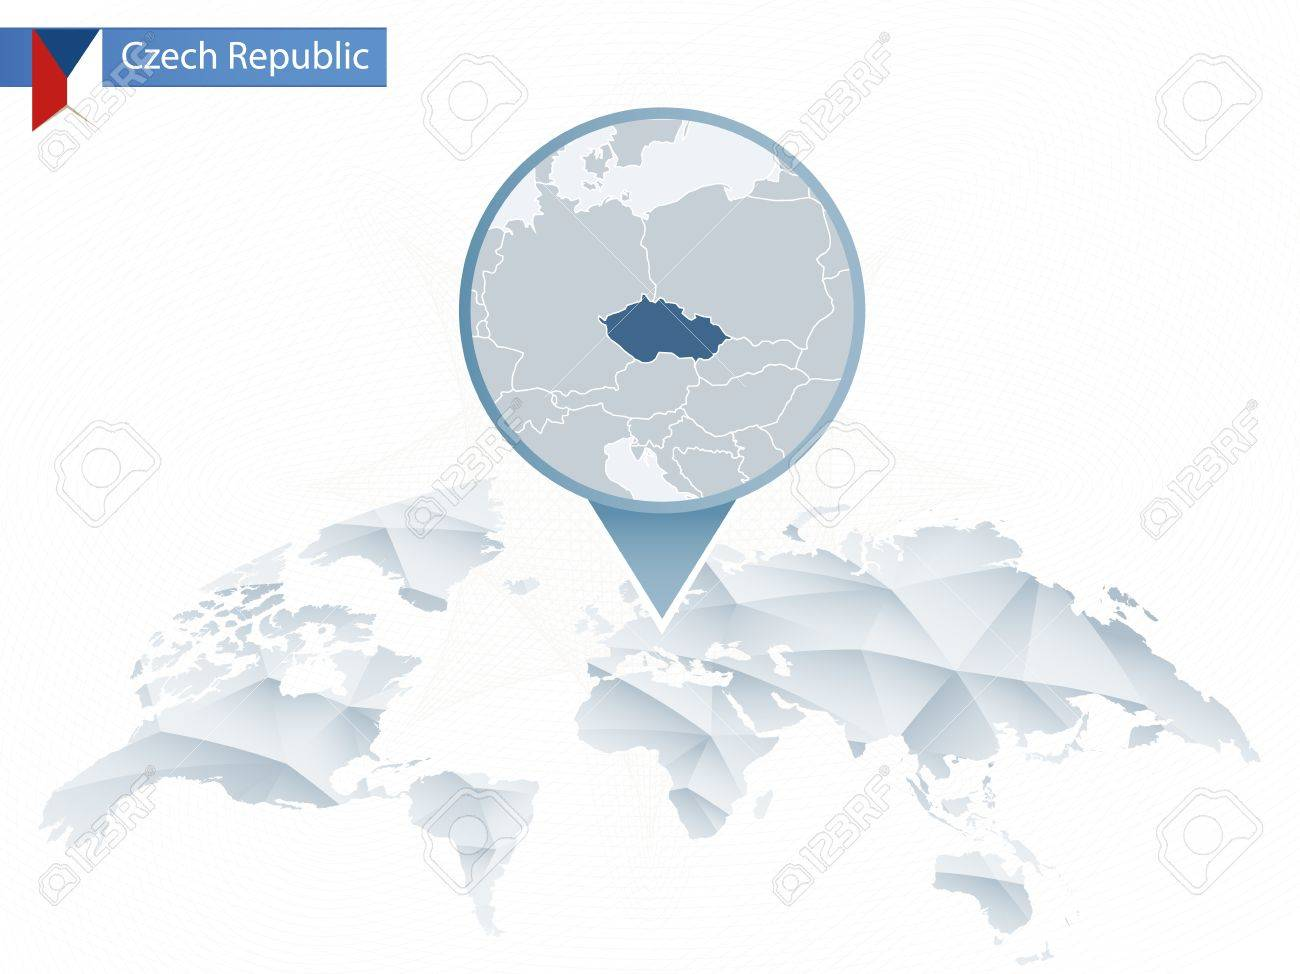 Picture of: Abstract Rounded World Map With Pinned Detailed Czech Republic Royalty Free Cliparts Vectors And Stock Illustration Image 86133400